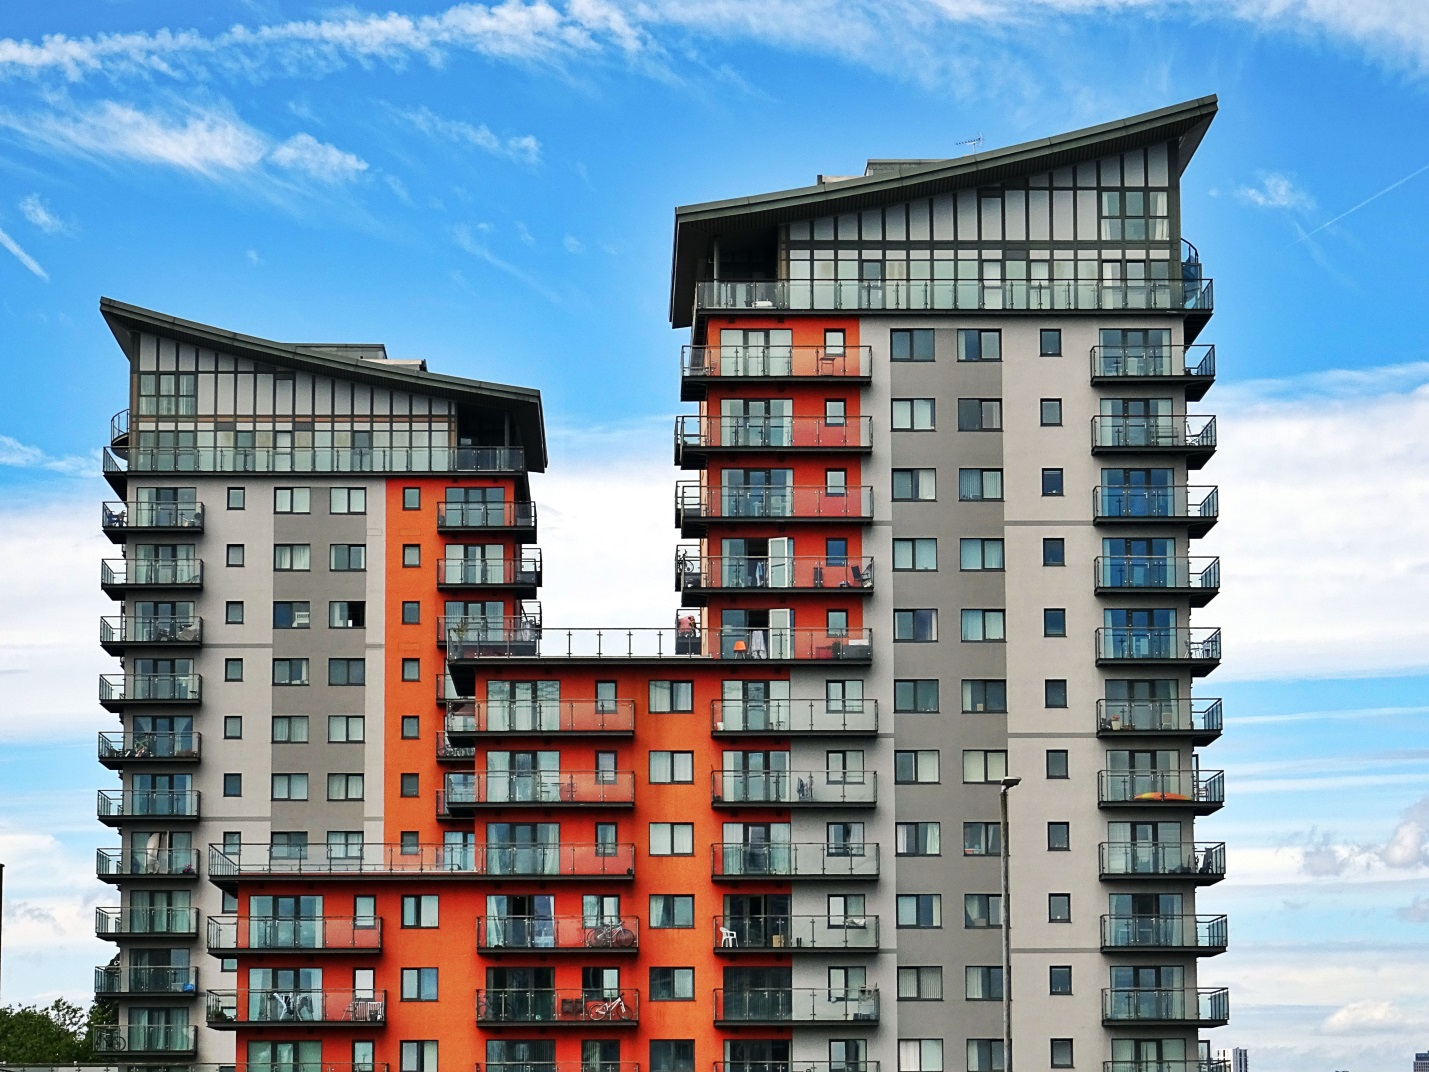 How Can Property Managers Use Technology to Attract and Retain Tenants